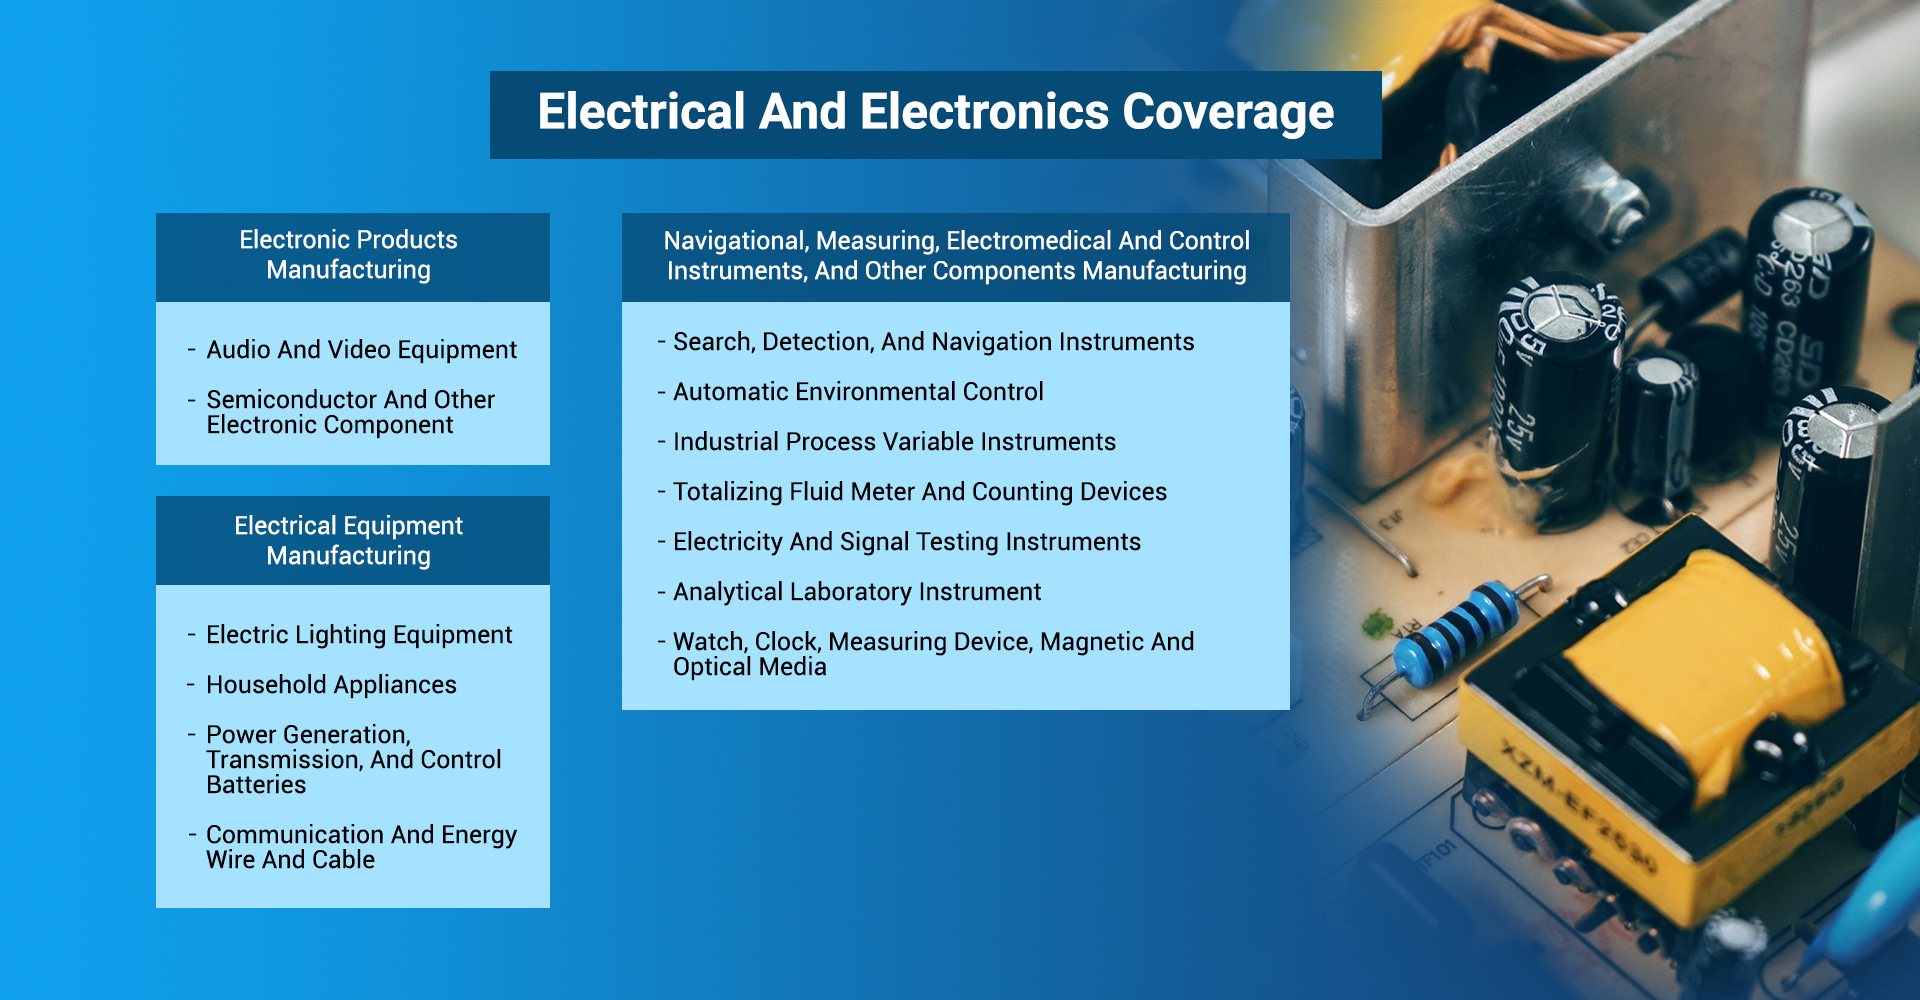 Electrical and Electronics Manufacturing Coverage